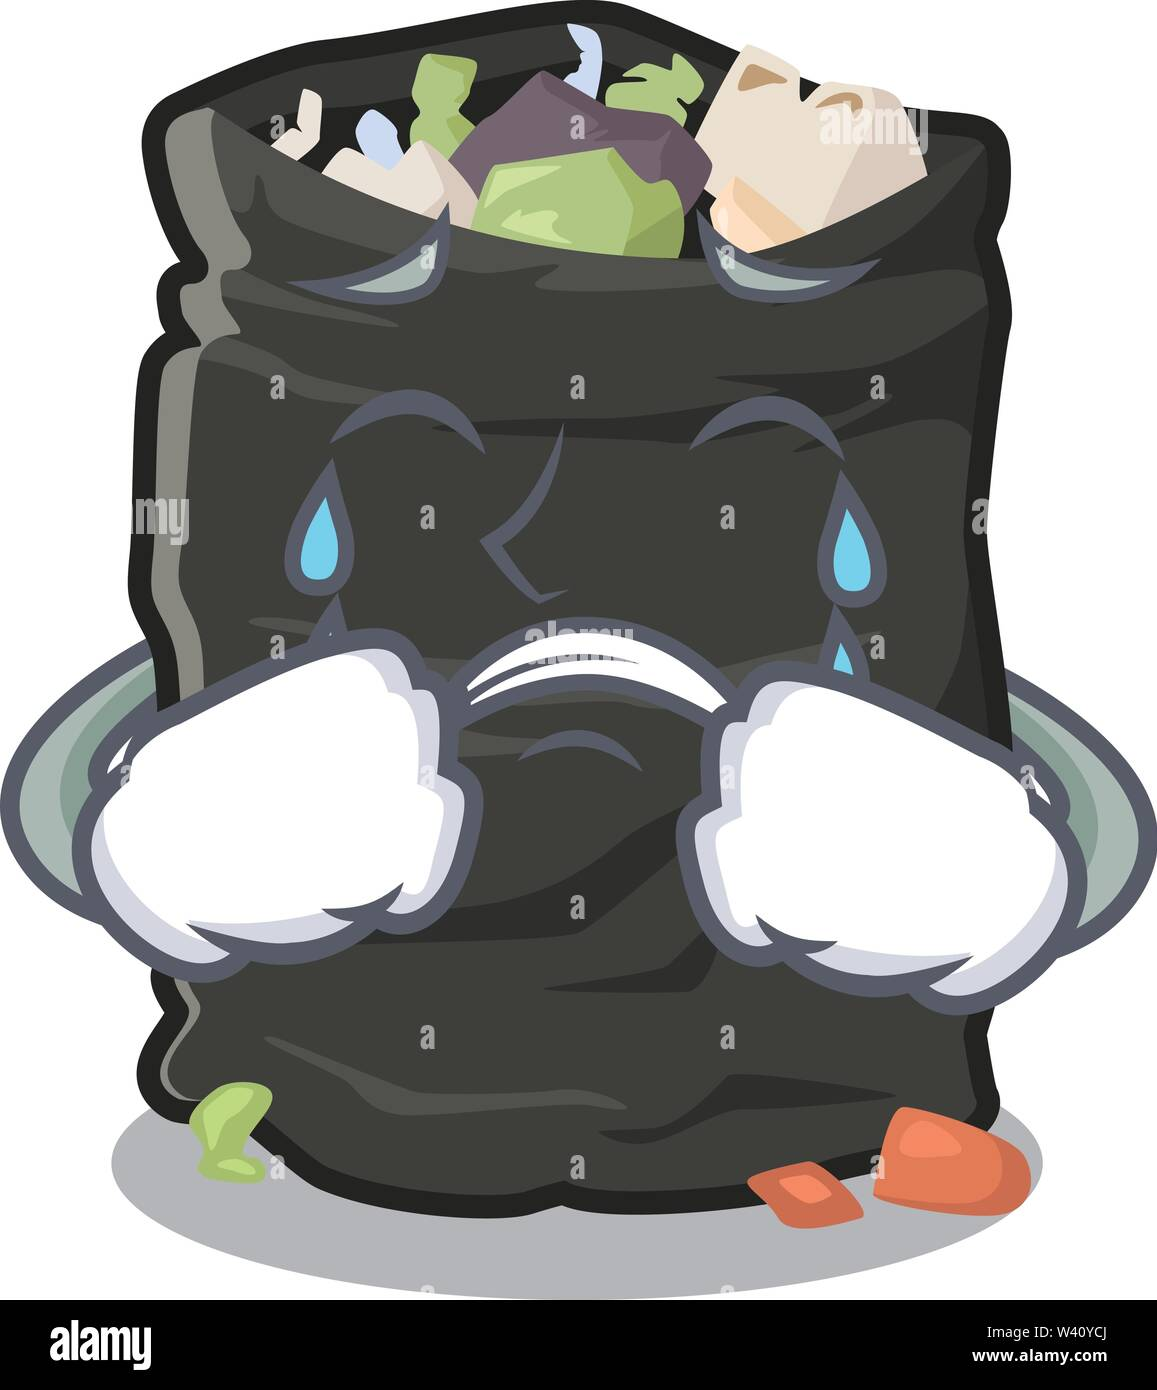 Crying cartoon garbage bag next to table vector illustration - Stock Image